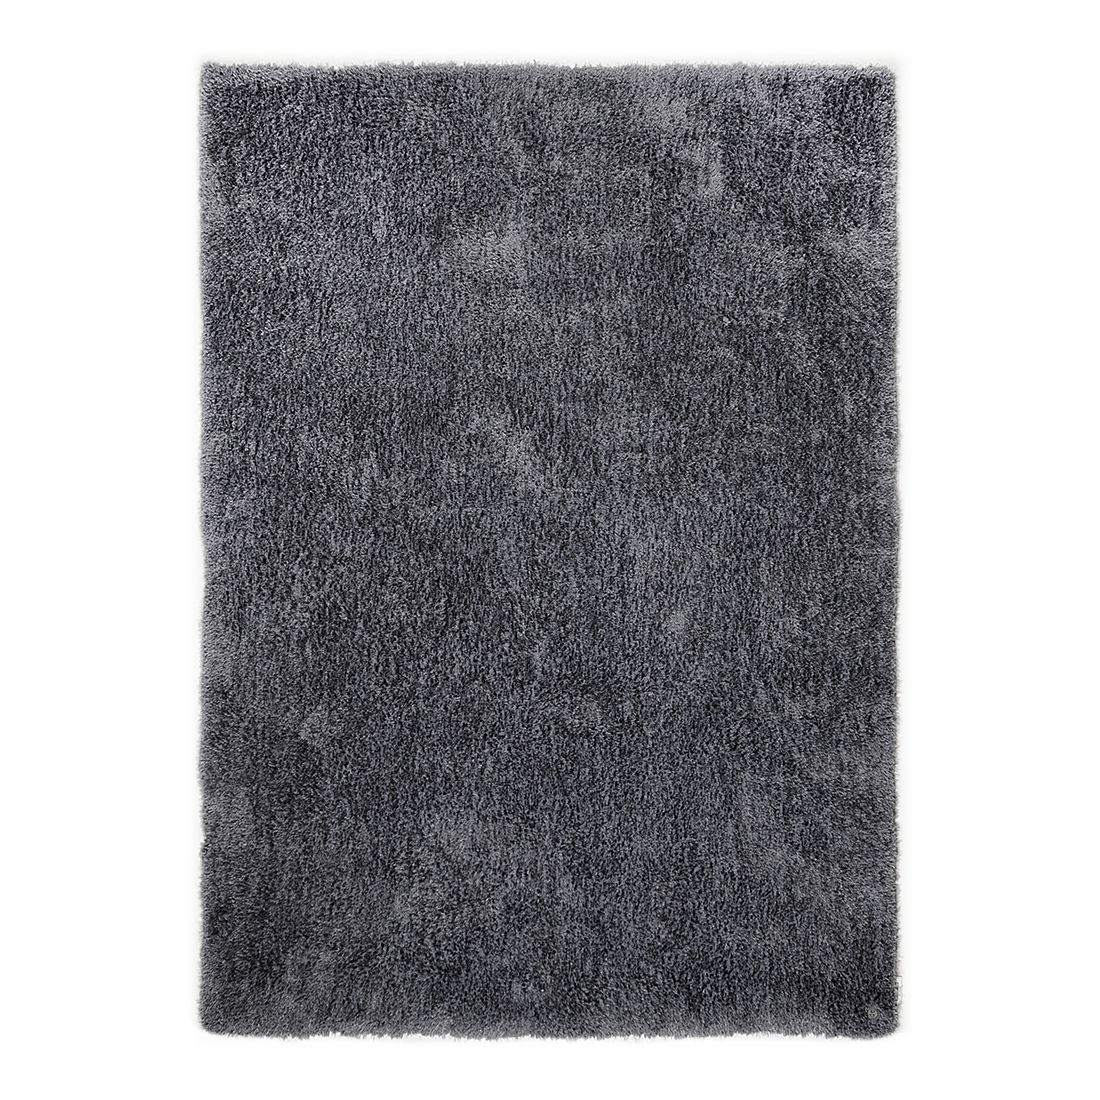 Teppich Soft Square - Anthrazit - Maße: 85 x 155 cm, Tom Tailor